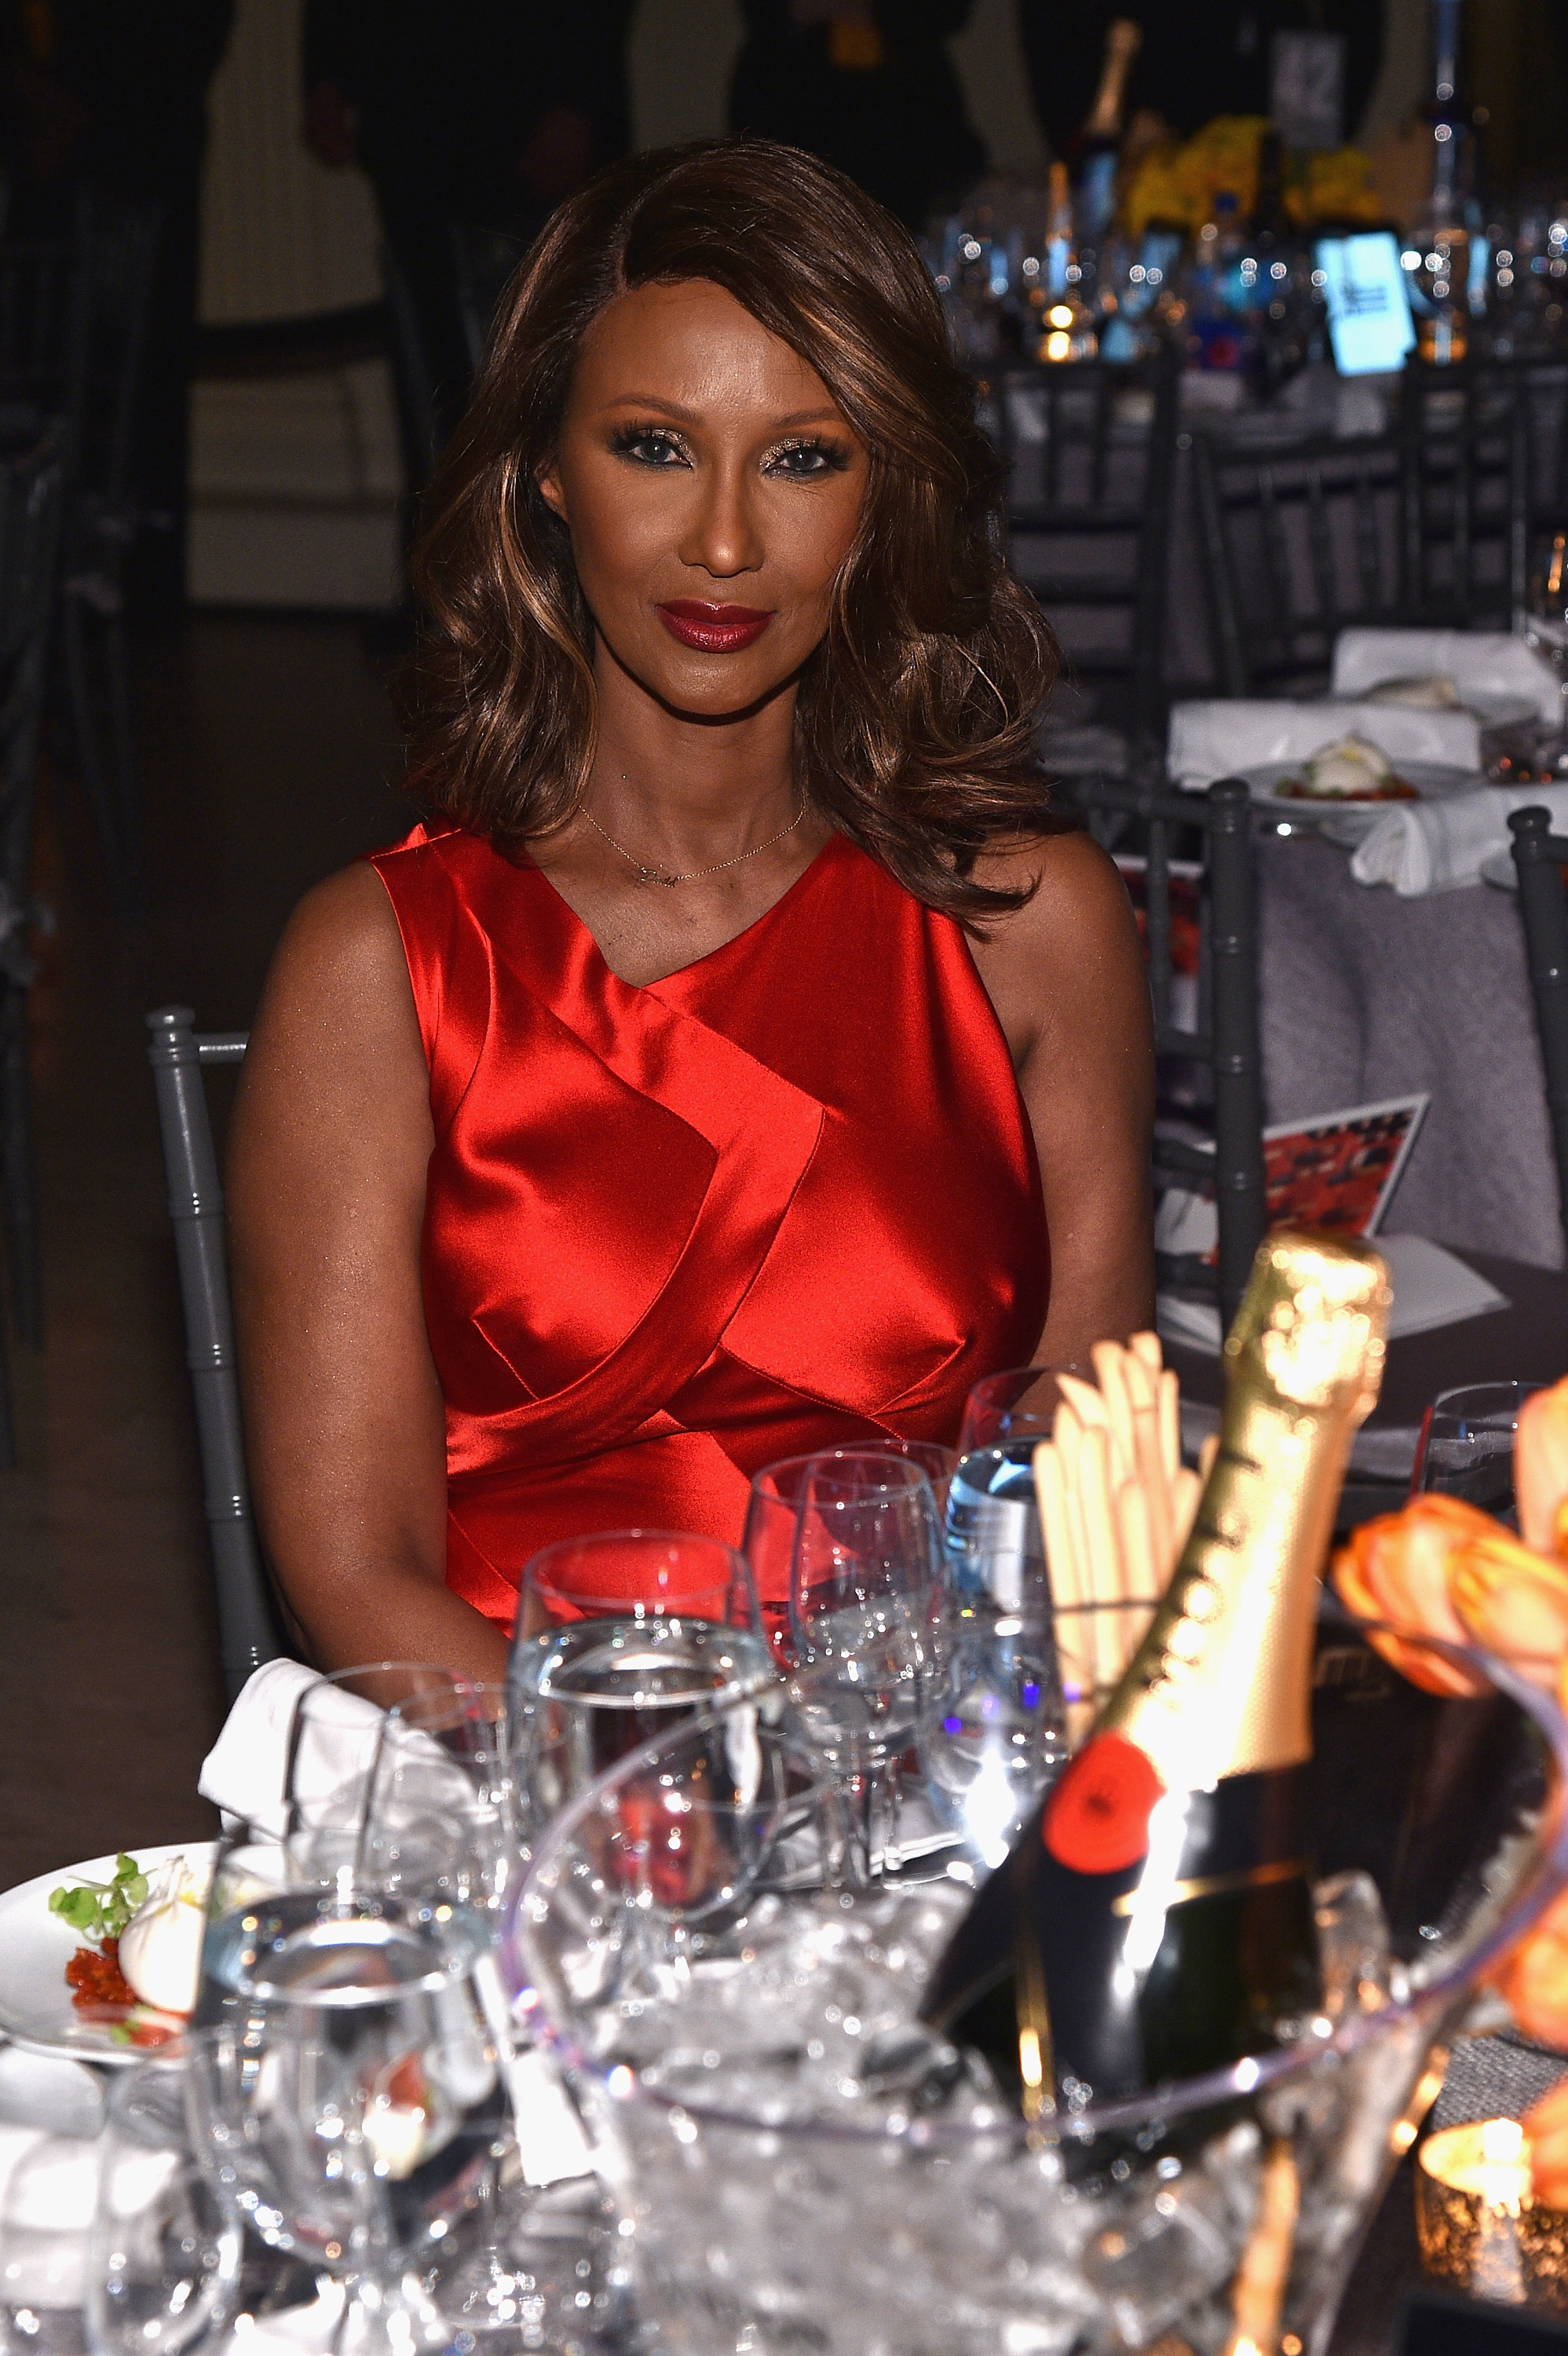 NEW YORK, NY - FEBRUARY 08:  Model Iman attends as Moet & Chandon Toasts to the amfAR New York Gala At Cipriani Wall Street at Cipriani Wall Street on February 8, 2017 in New York City.  (Photo by Bryan Bedder/Getty Images for Moet & Chandon)